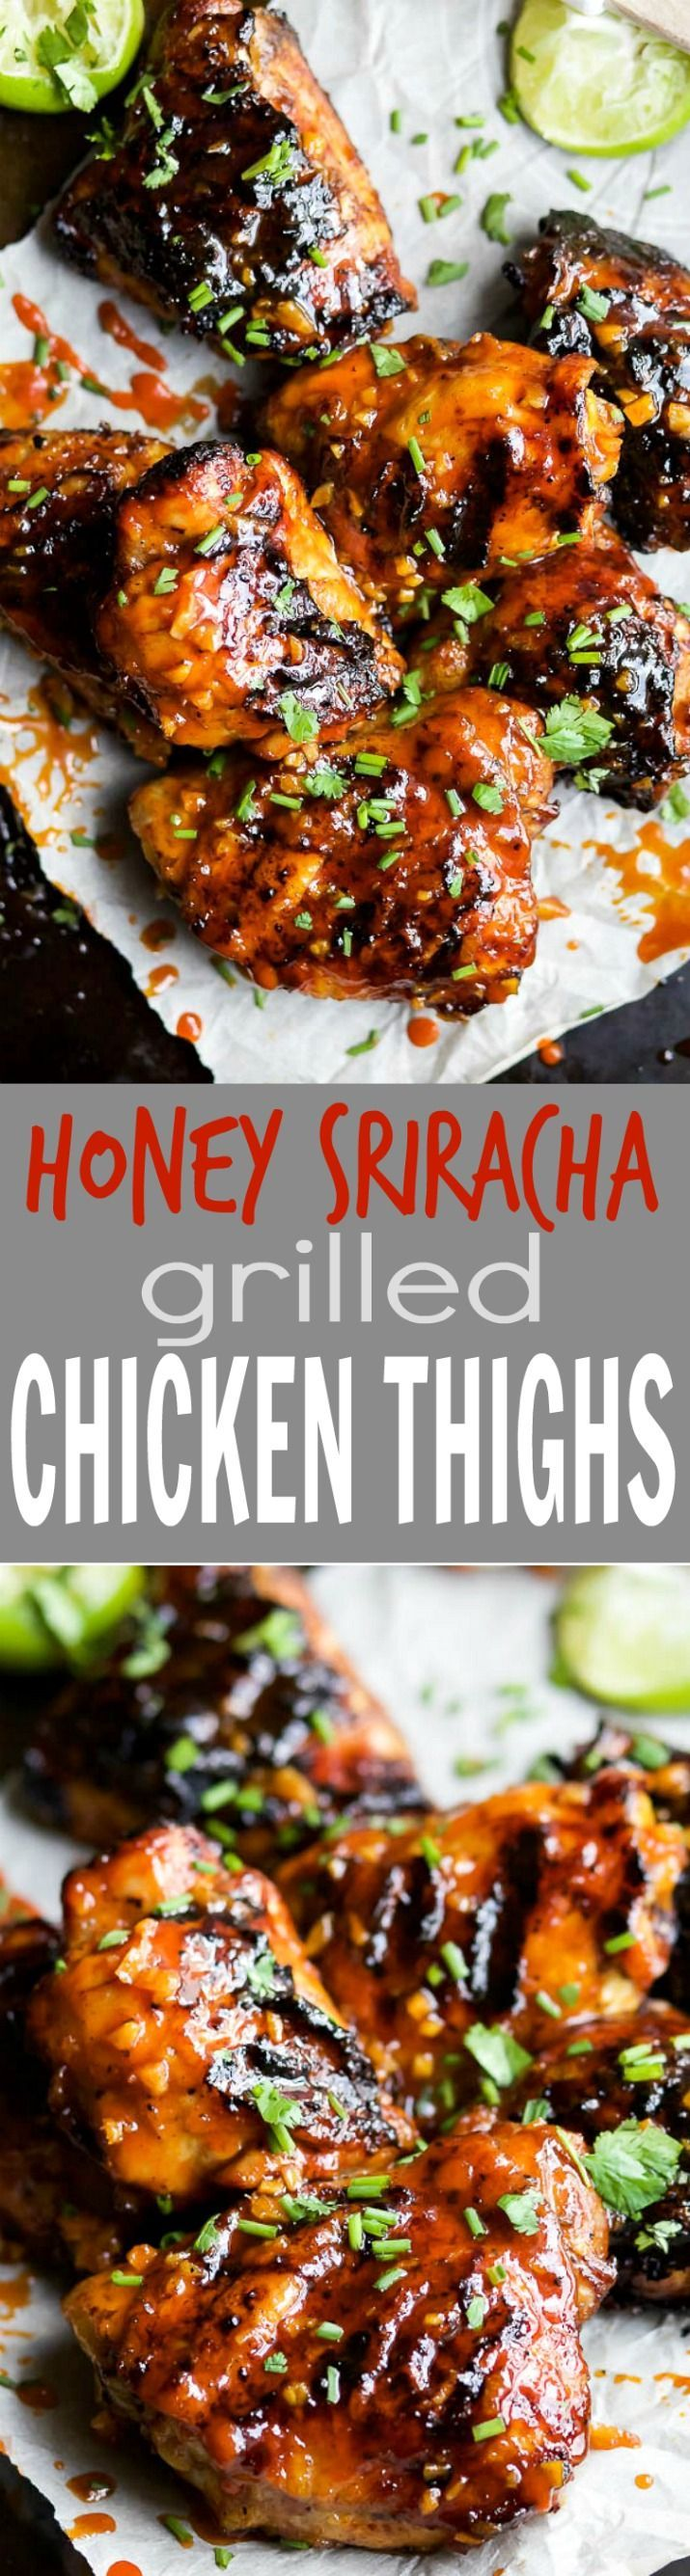 Sweet & Spicy HONEY SRIRACHA GRILLED CHICKEN THIGHS - juicy smoky Chicken Thighs slathered in an easy Honey Sriracha glaze that will make you swoon! I guarantee these will be a hit! | http://joyfulhealthyeats.com | #ad | gluten free recipes